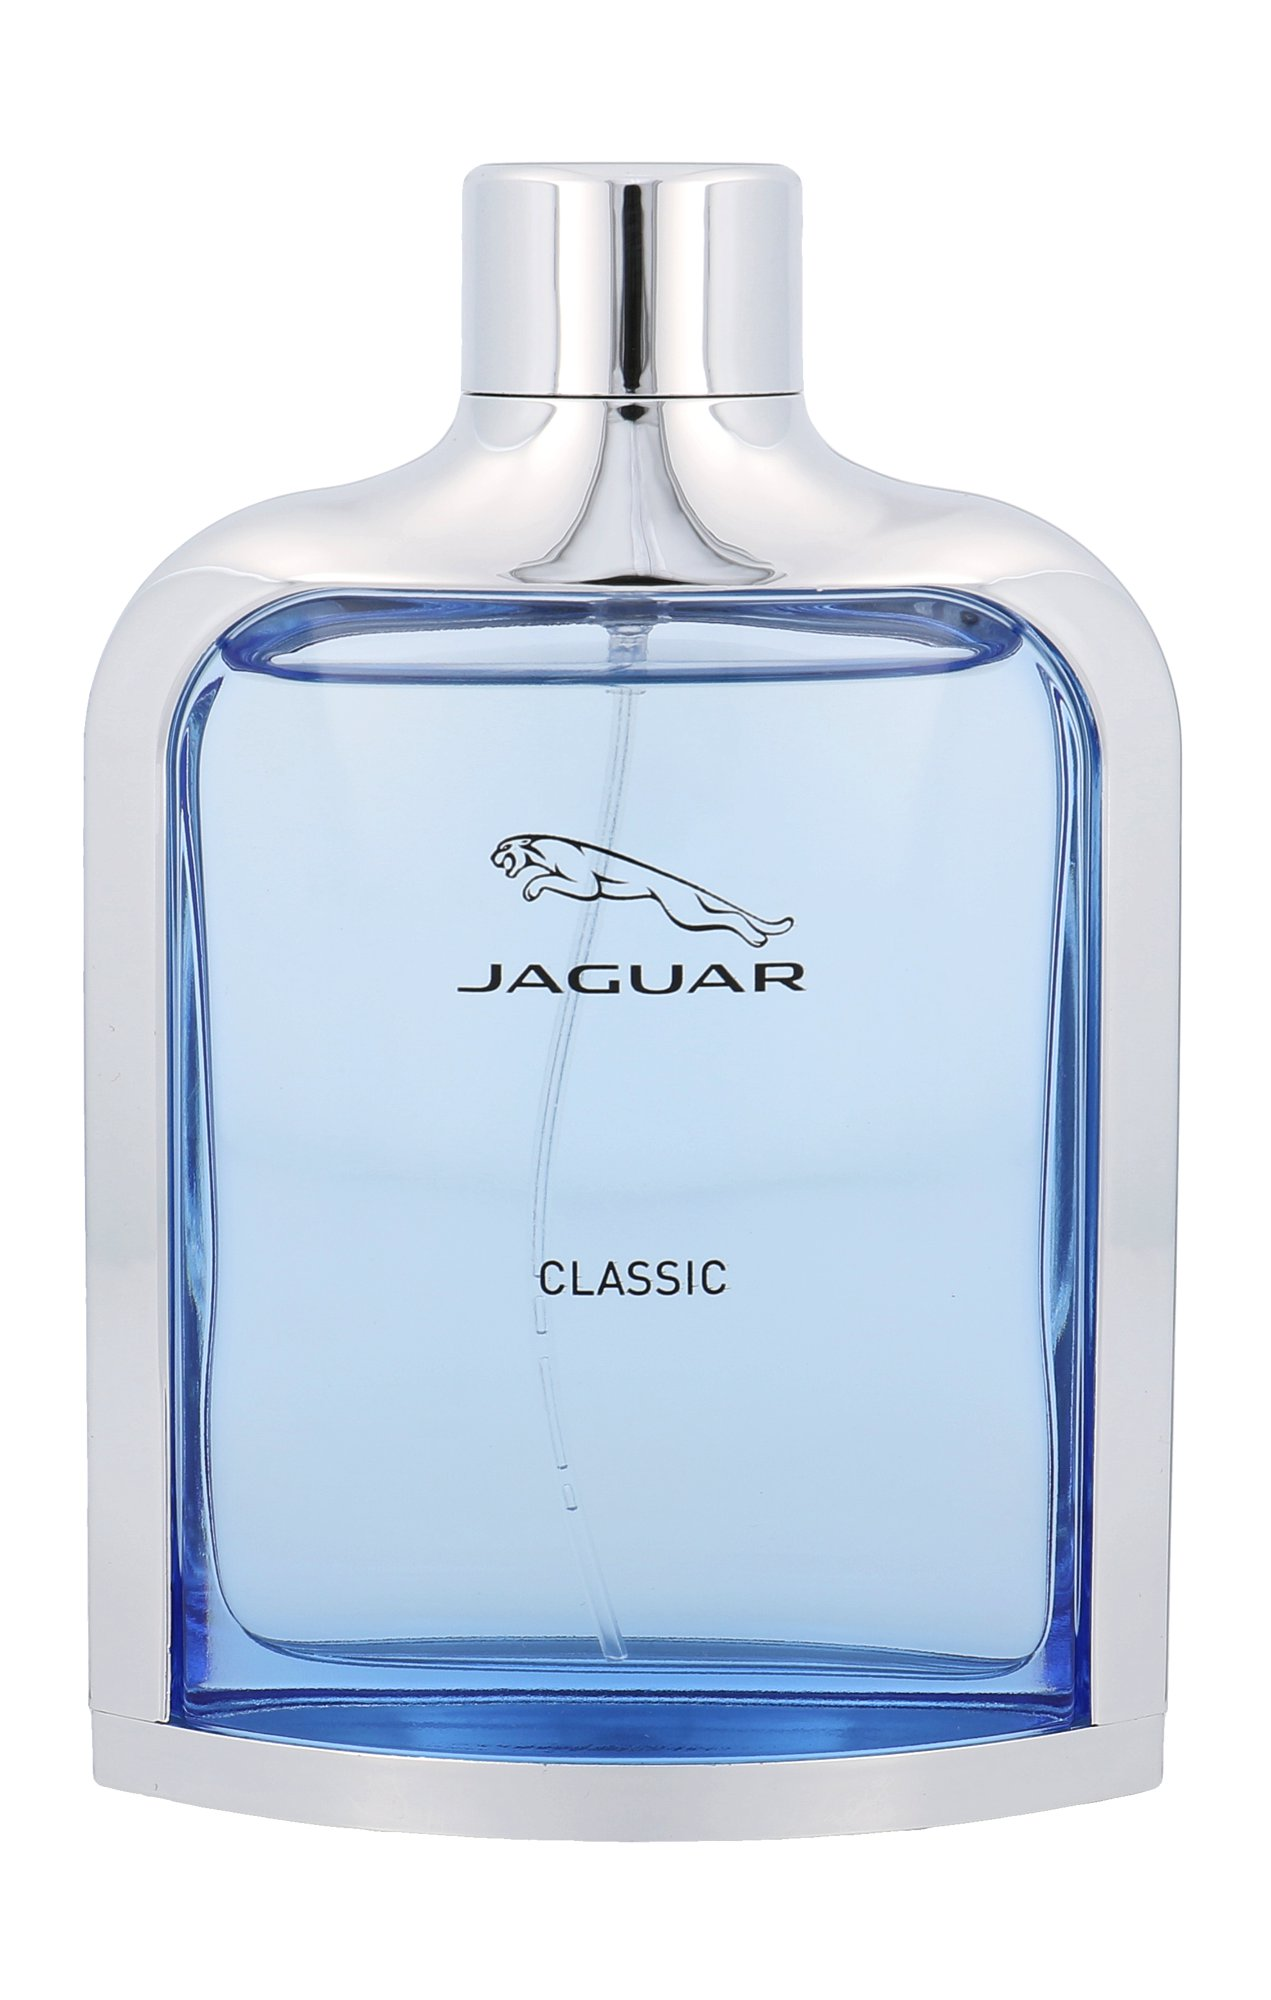 Jaguar Classic, edt 100ml